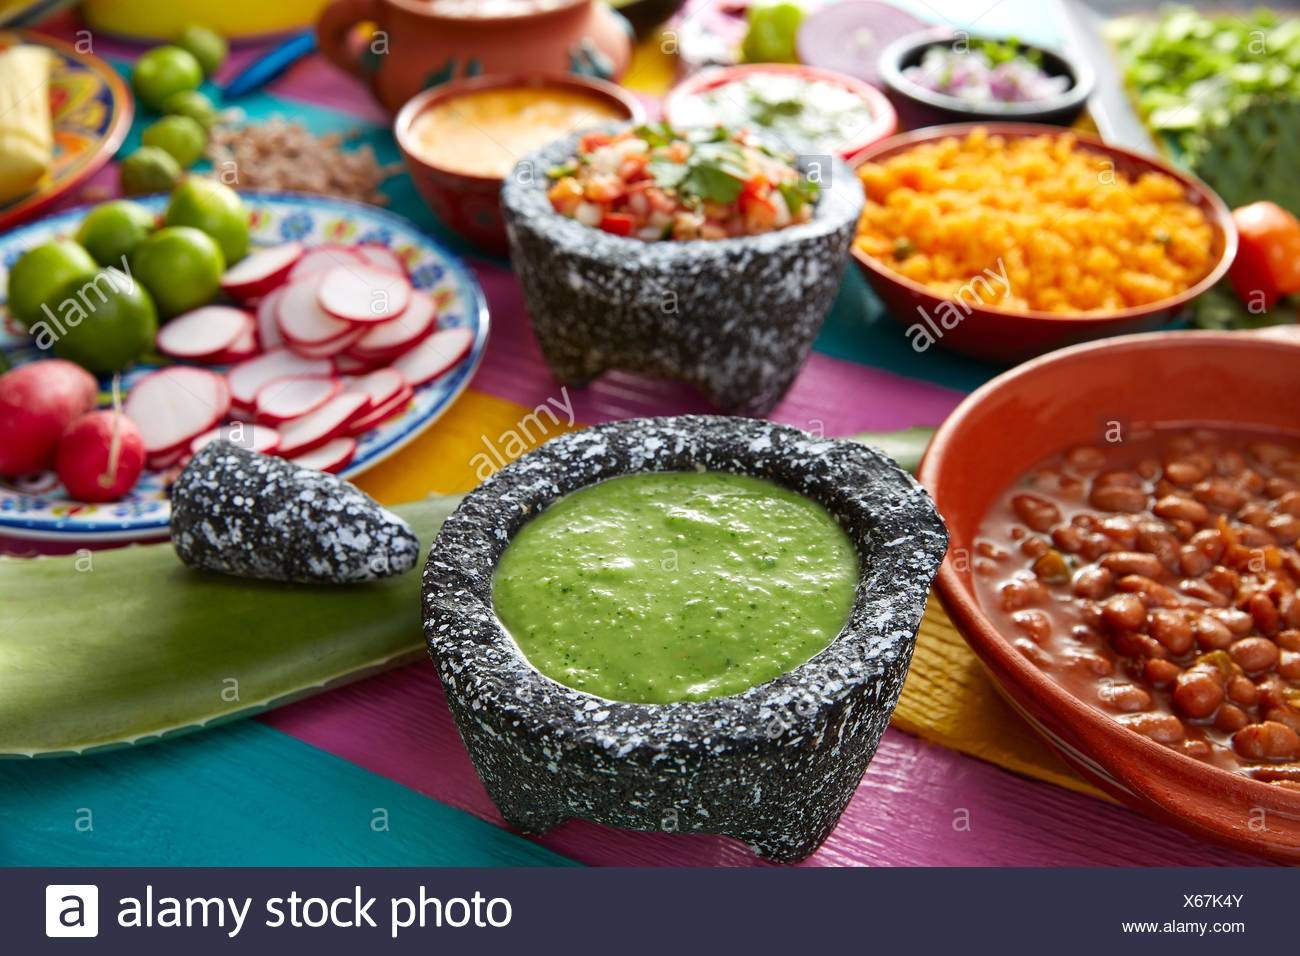 Green sauce with tomato and chili pepper in a mexican food table. Stock Photo